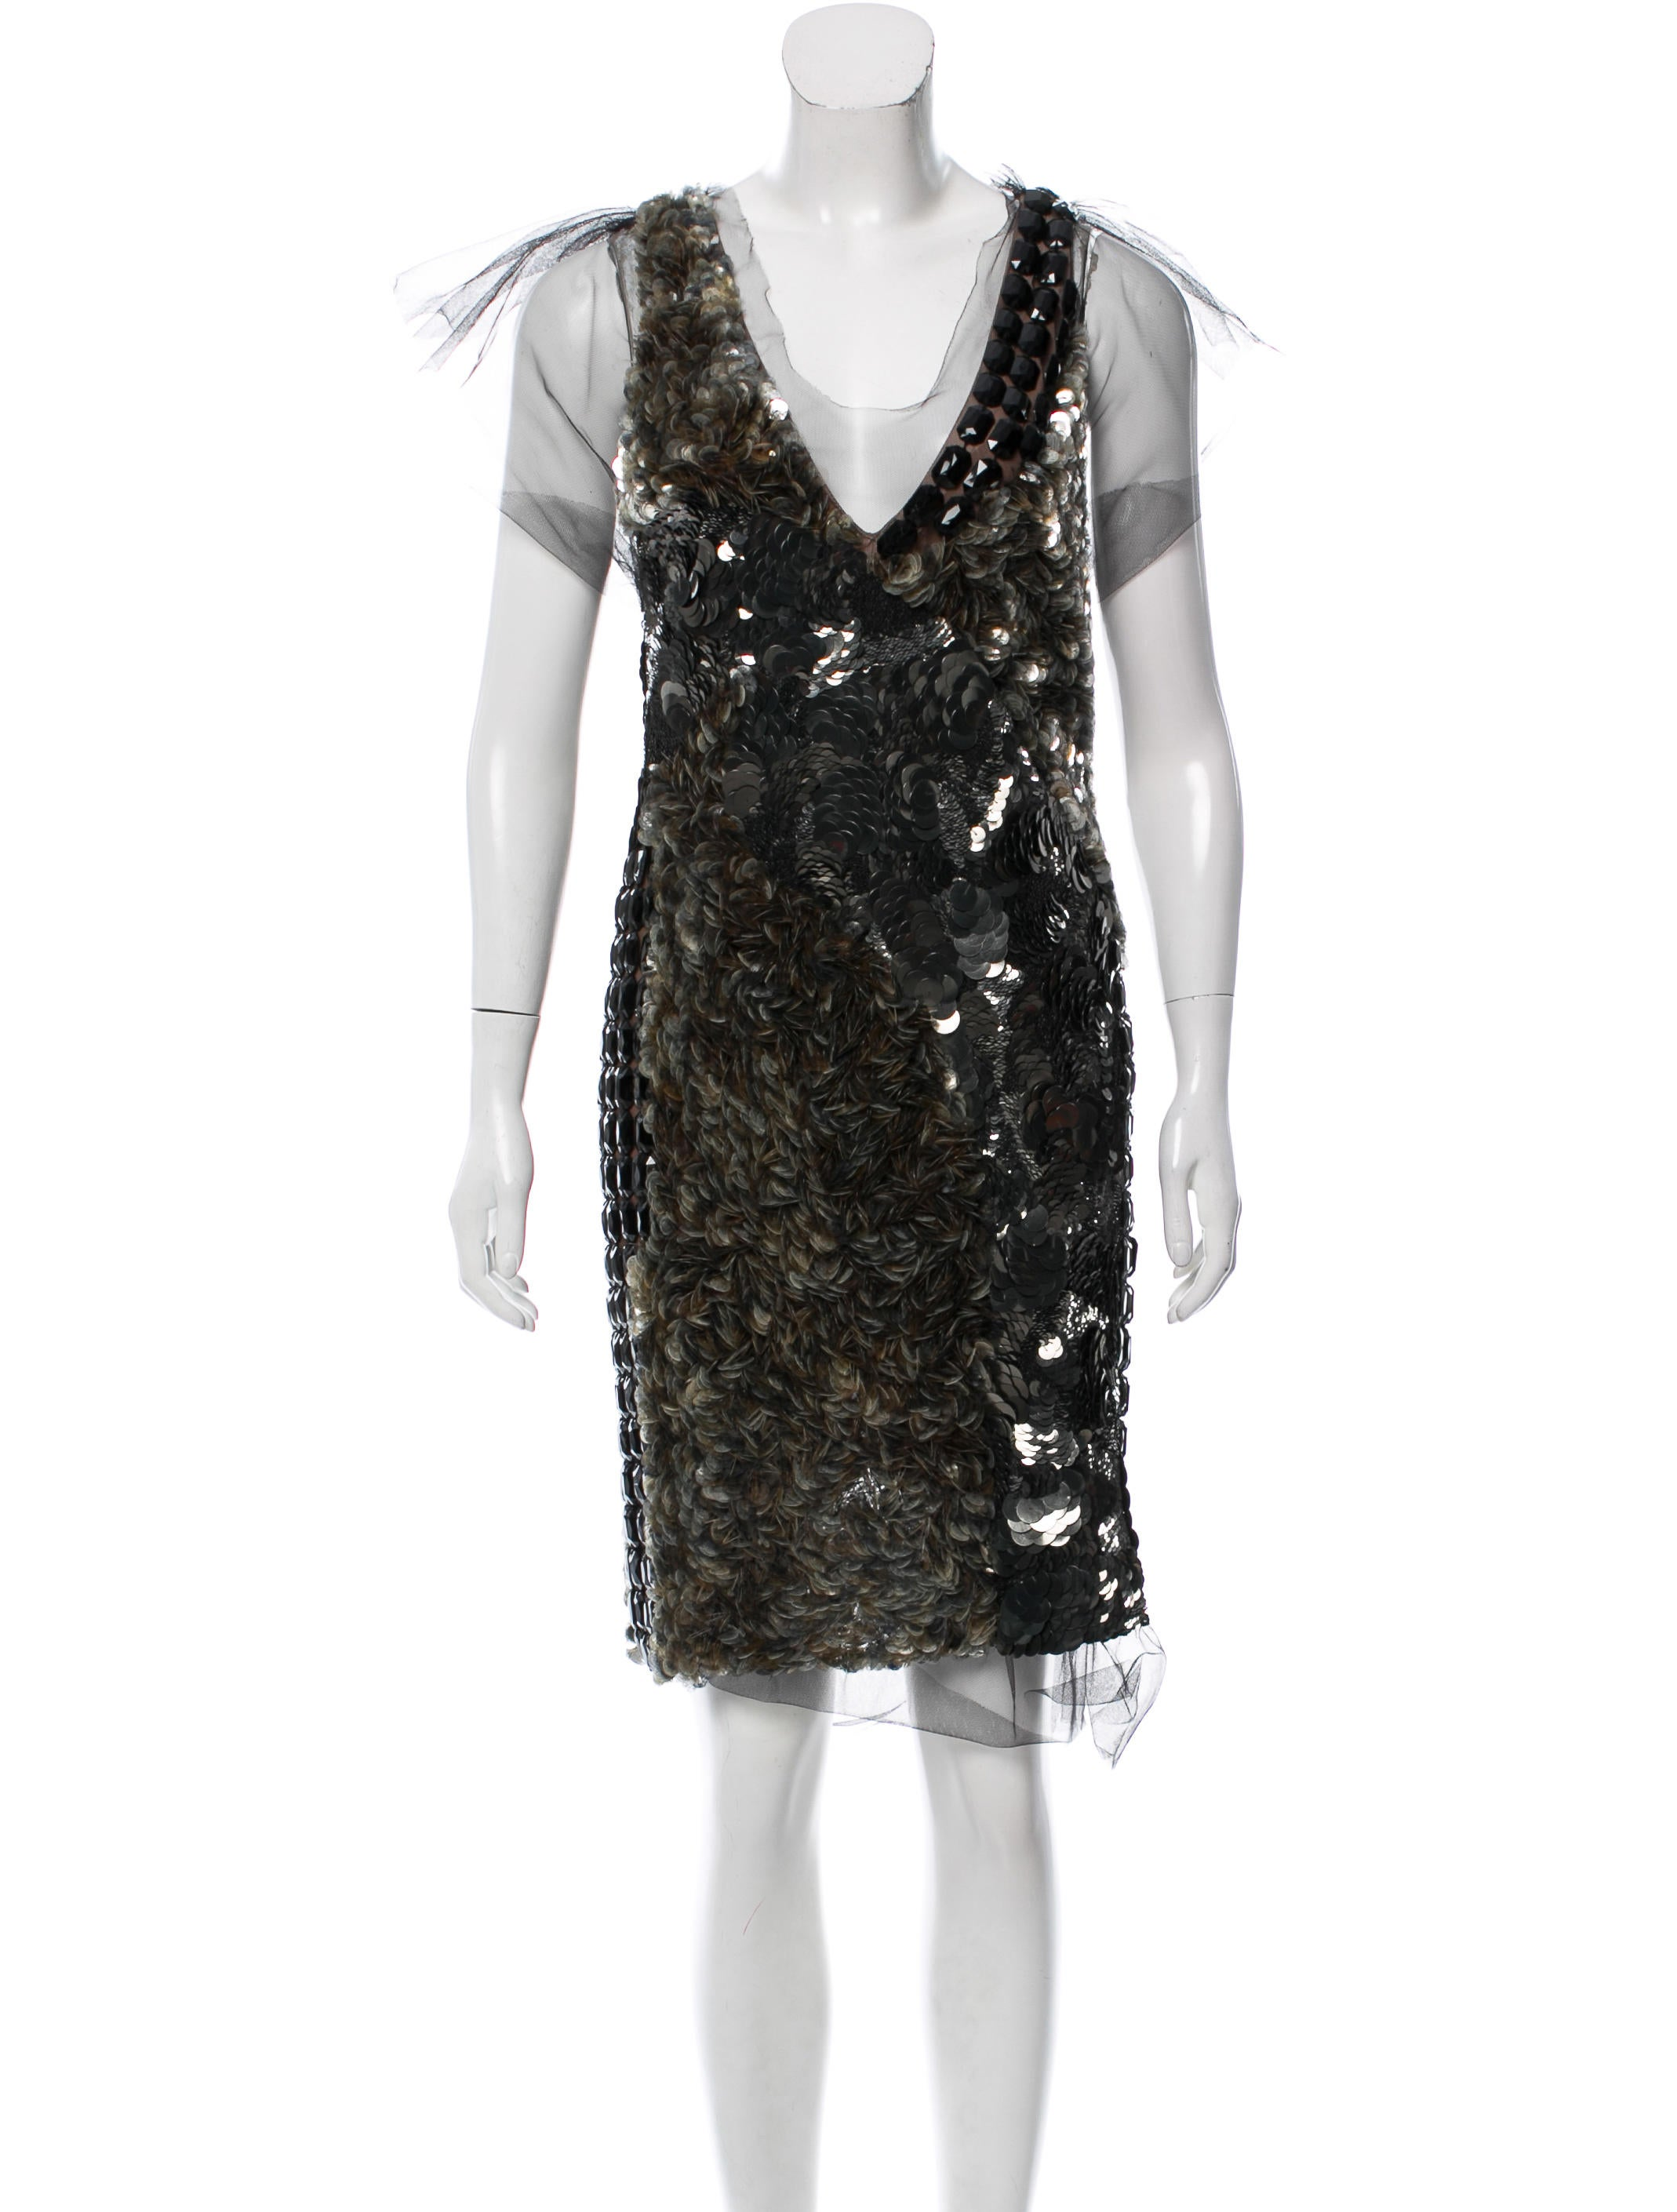 Vera Wang Embellished Cocktail Dress - Clothing - VER26914 | The ...